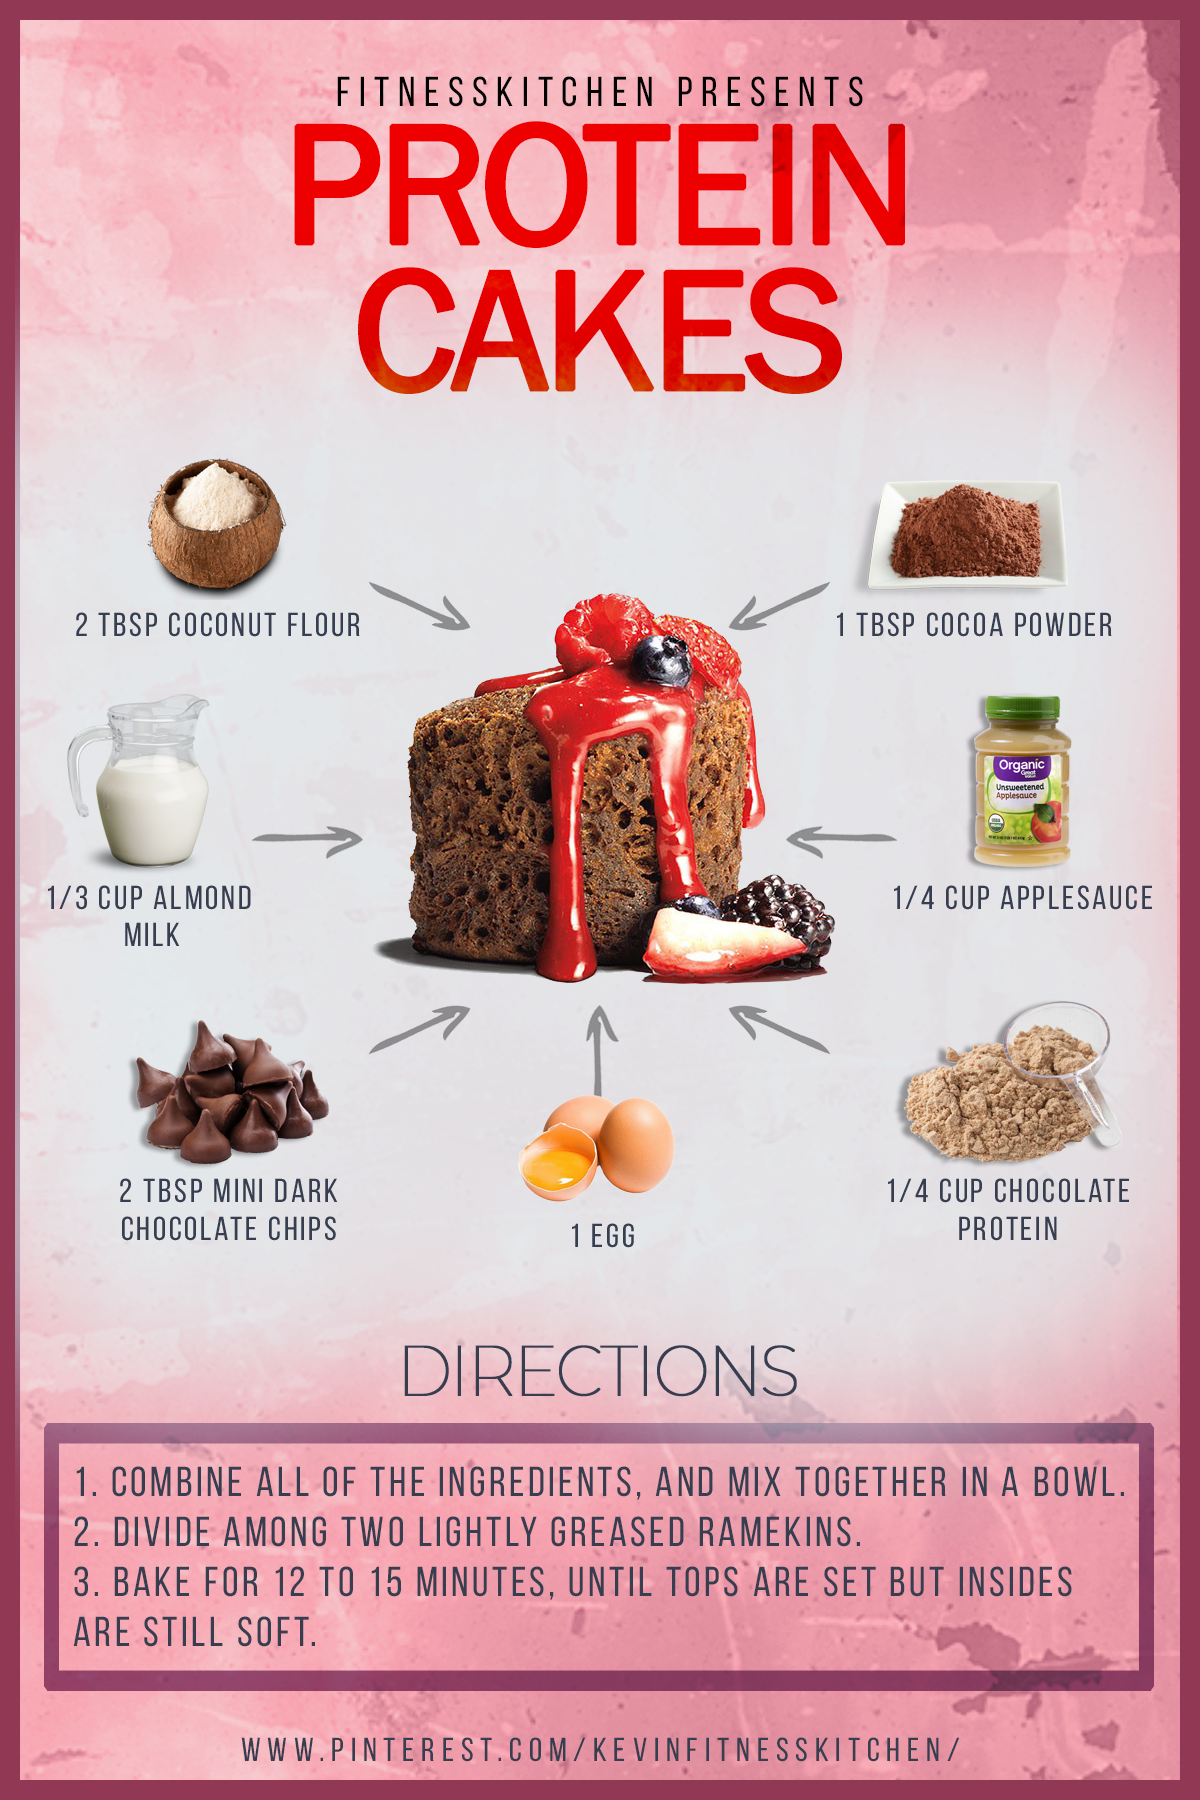 These snack cakes come packed with protein so you can indulge guilt-free. #health #healthy #healthyc...